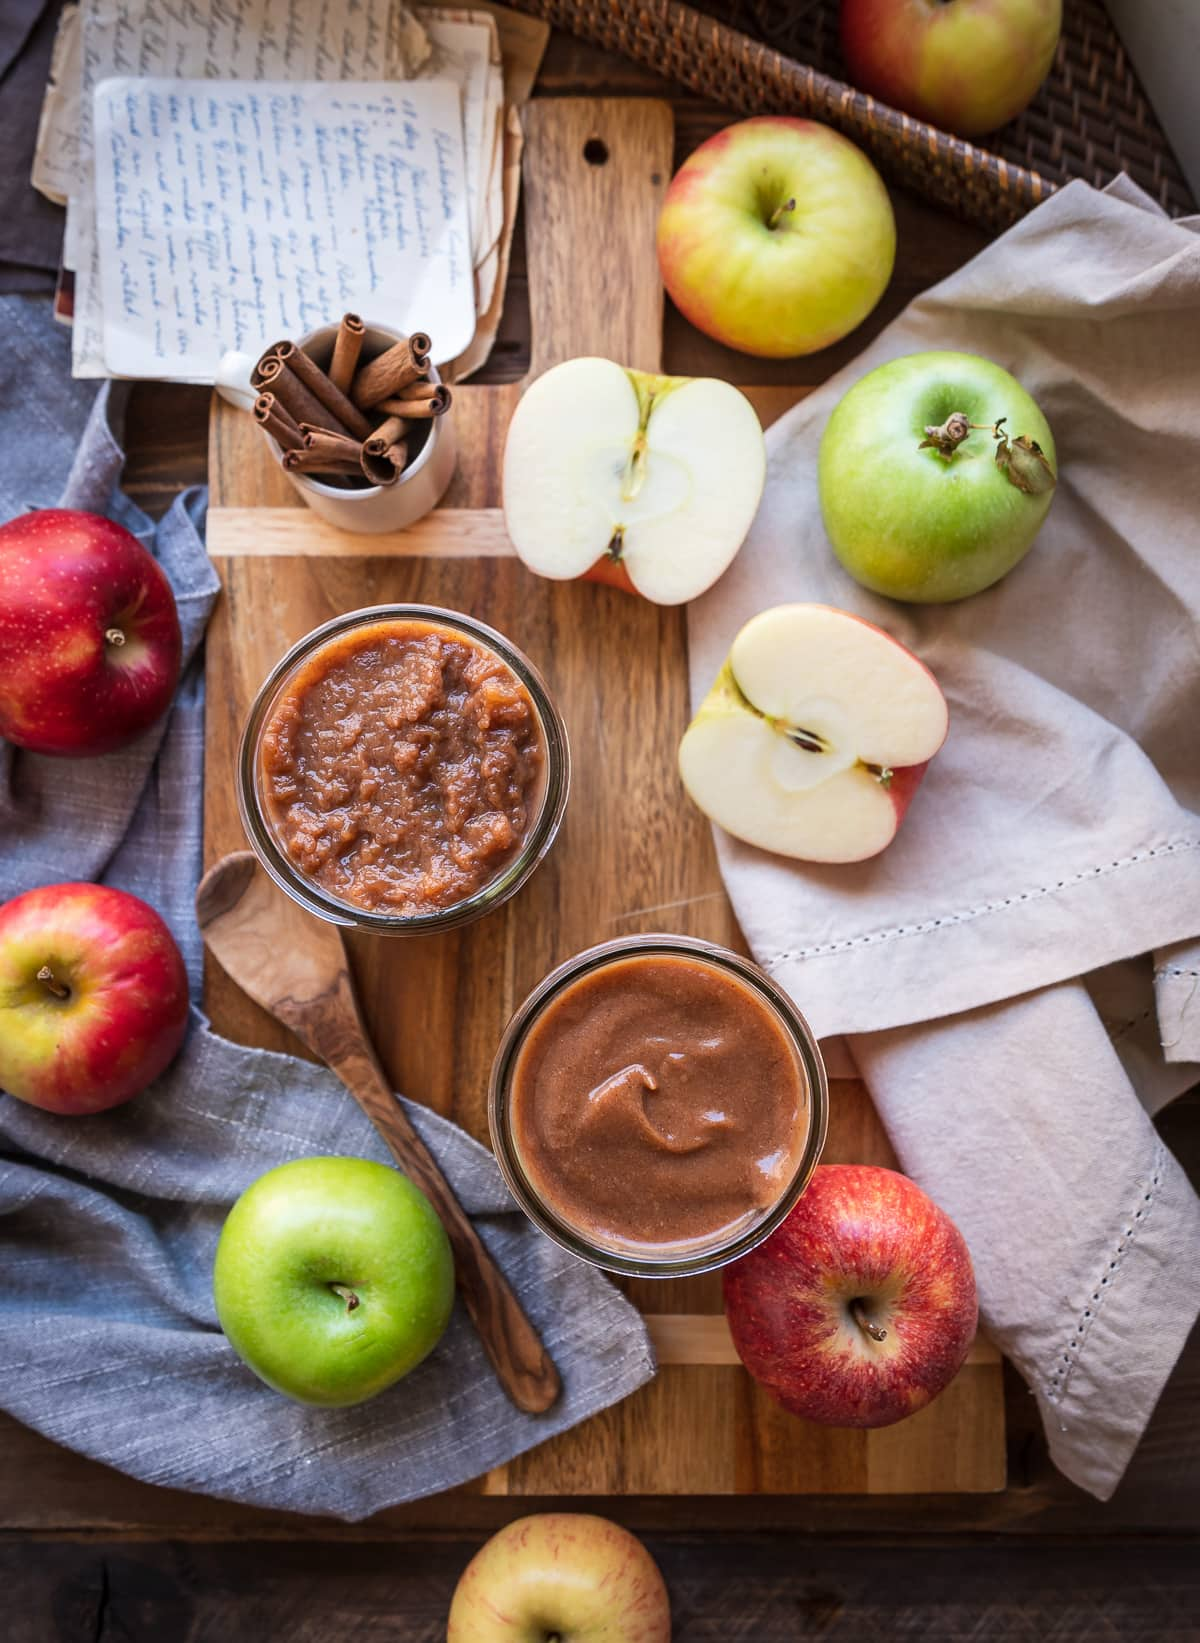 caramel brown slow cooker apple butter in jars whole apples napkins spoon whole cinnamon sticks